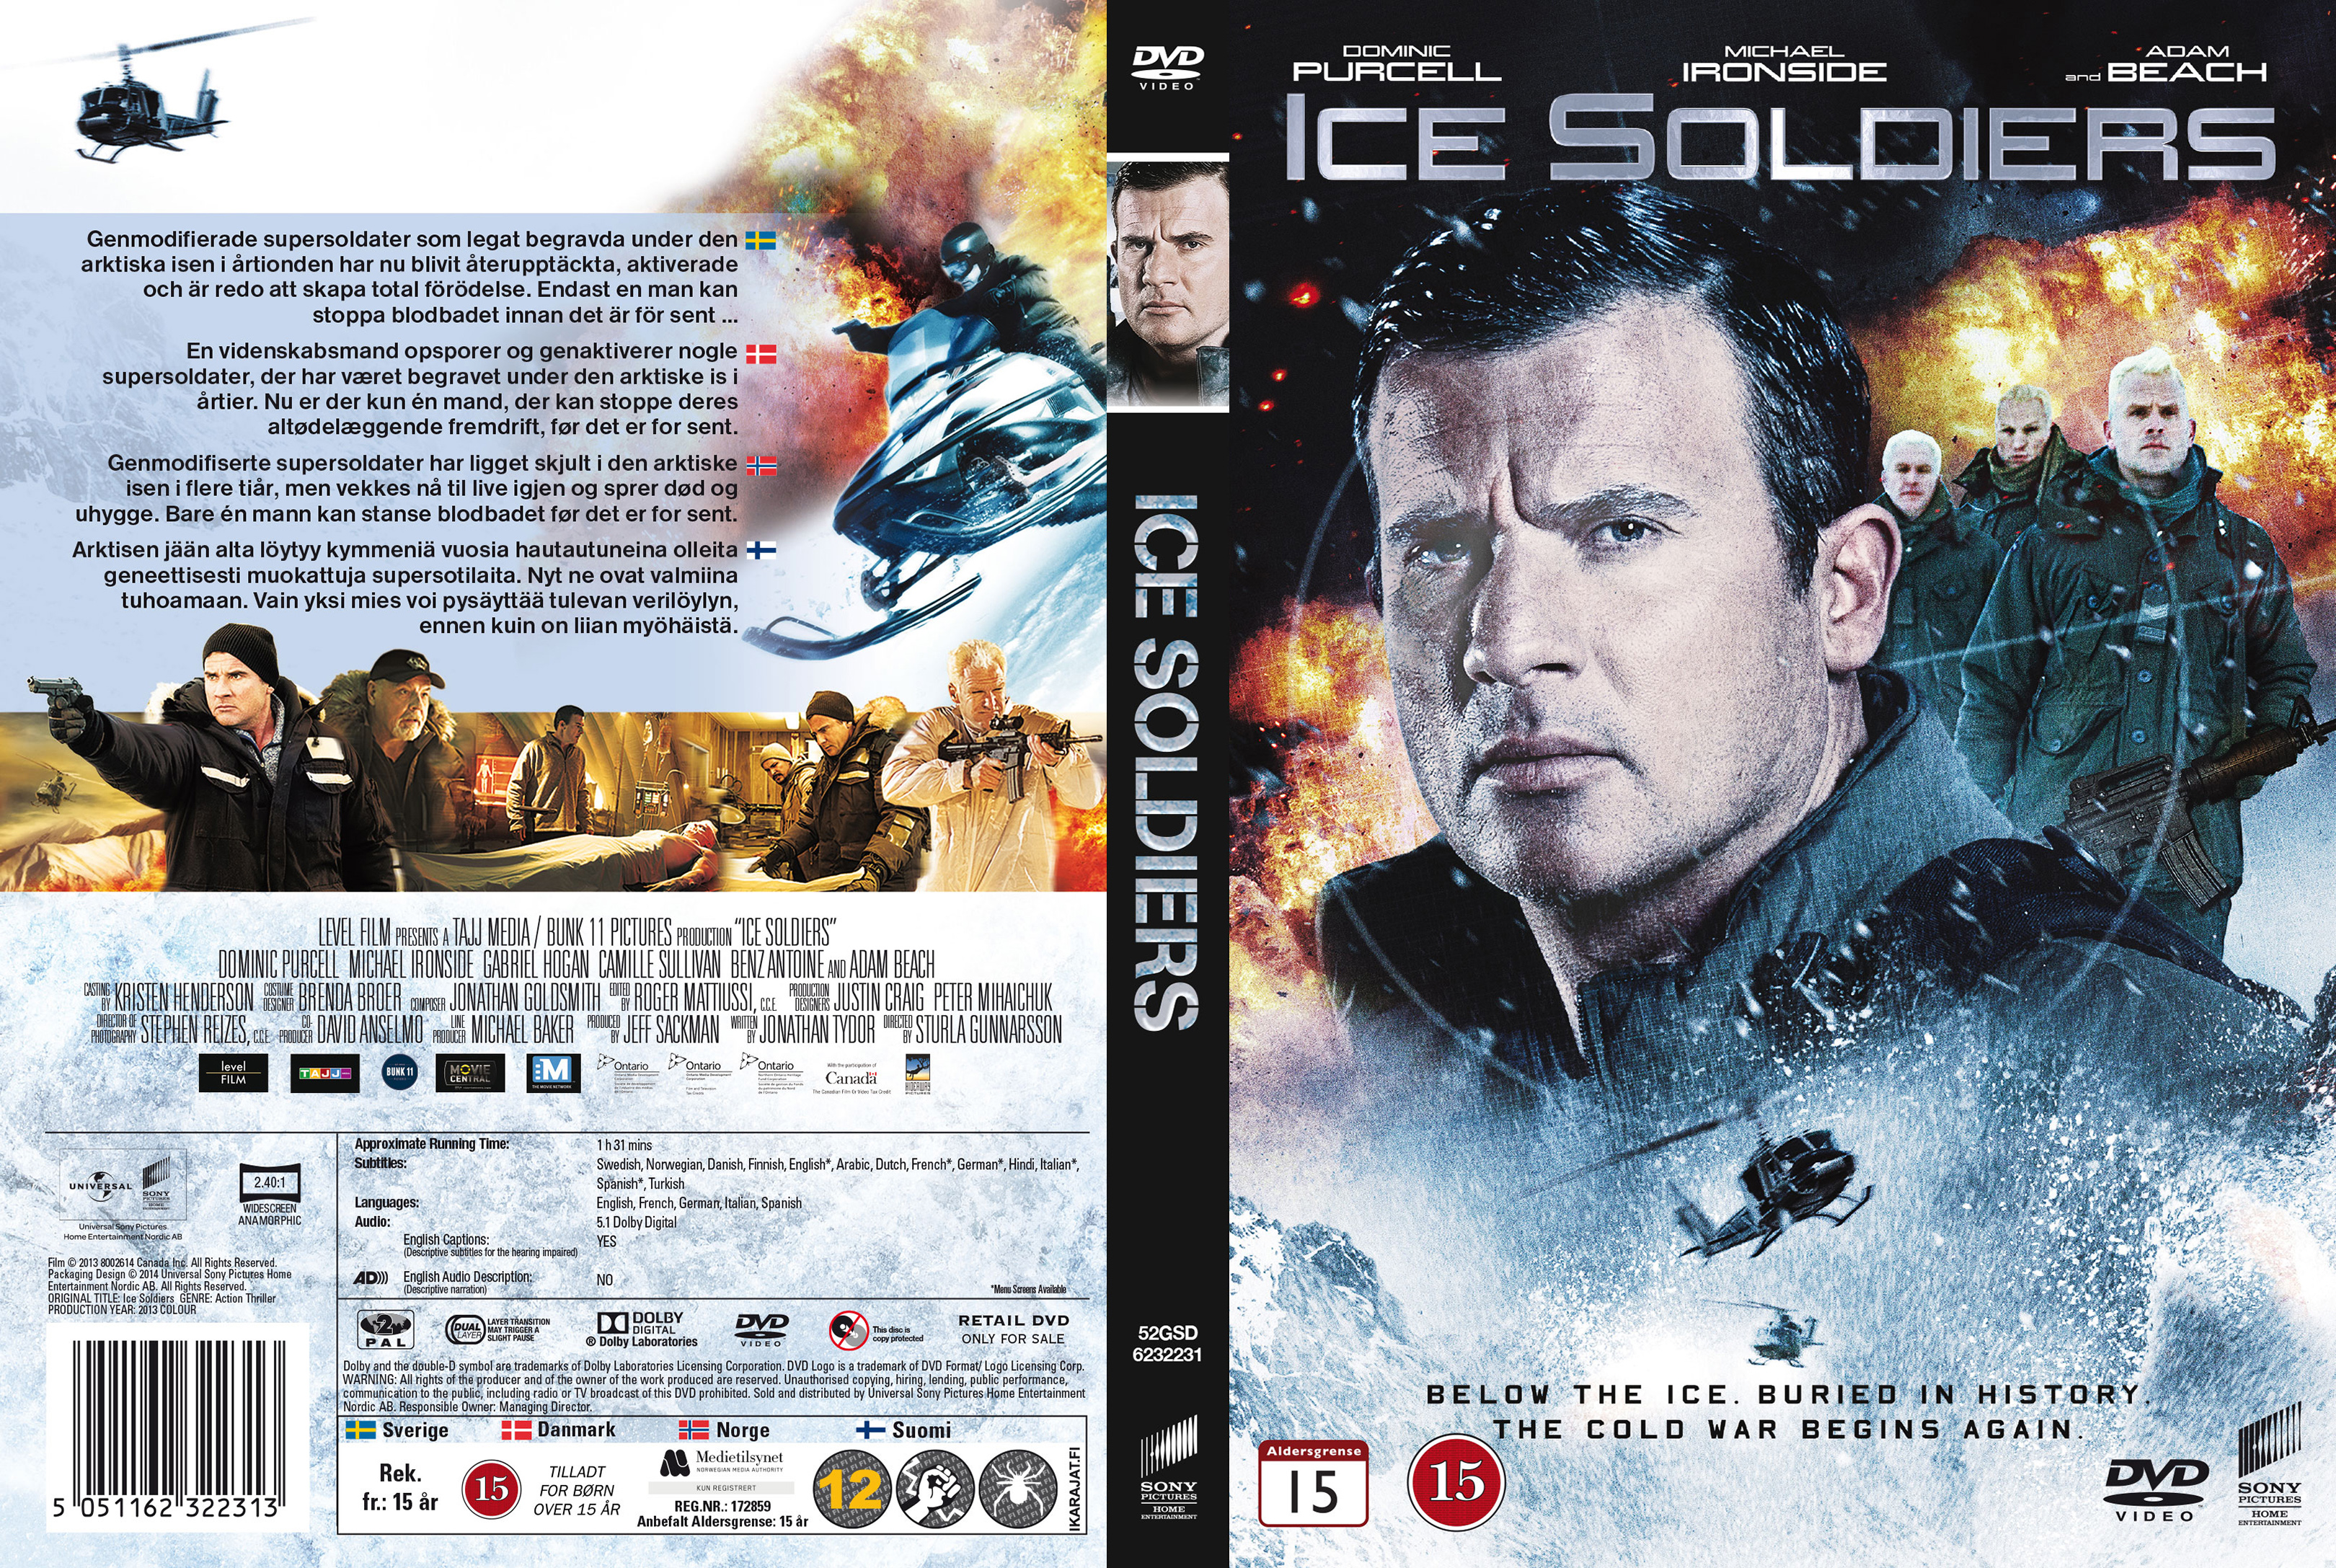 Ice Soldiers 20... Ice Soldiers 2013 Poster